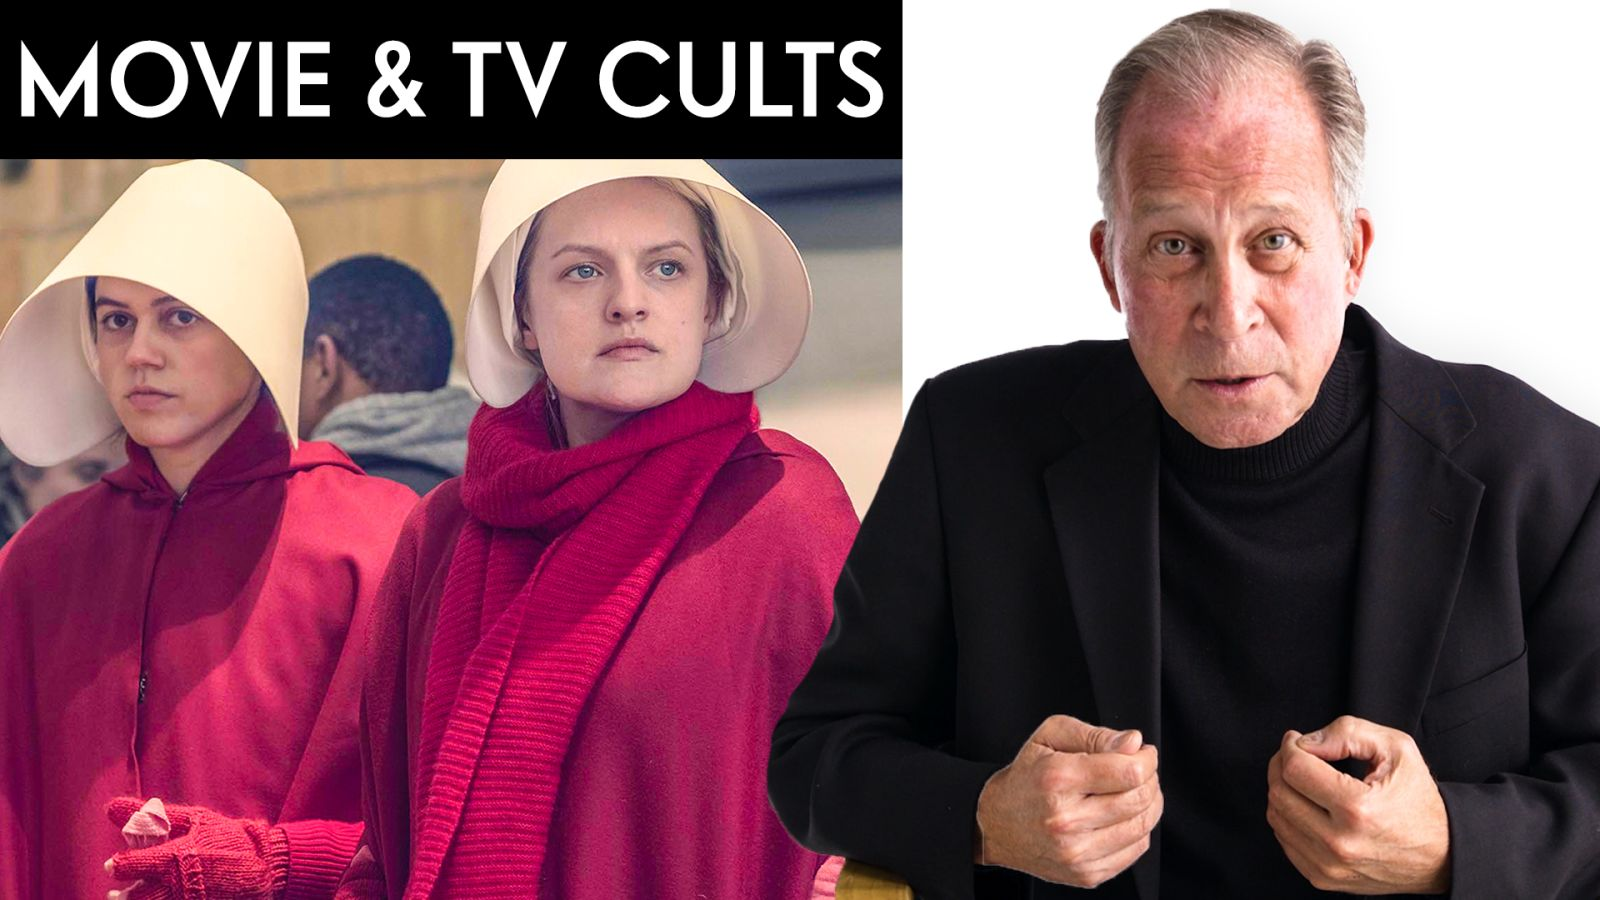 Cult Deprogrammer Reviews Cults From Movies & TV